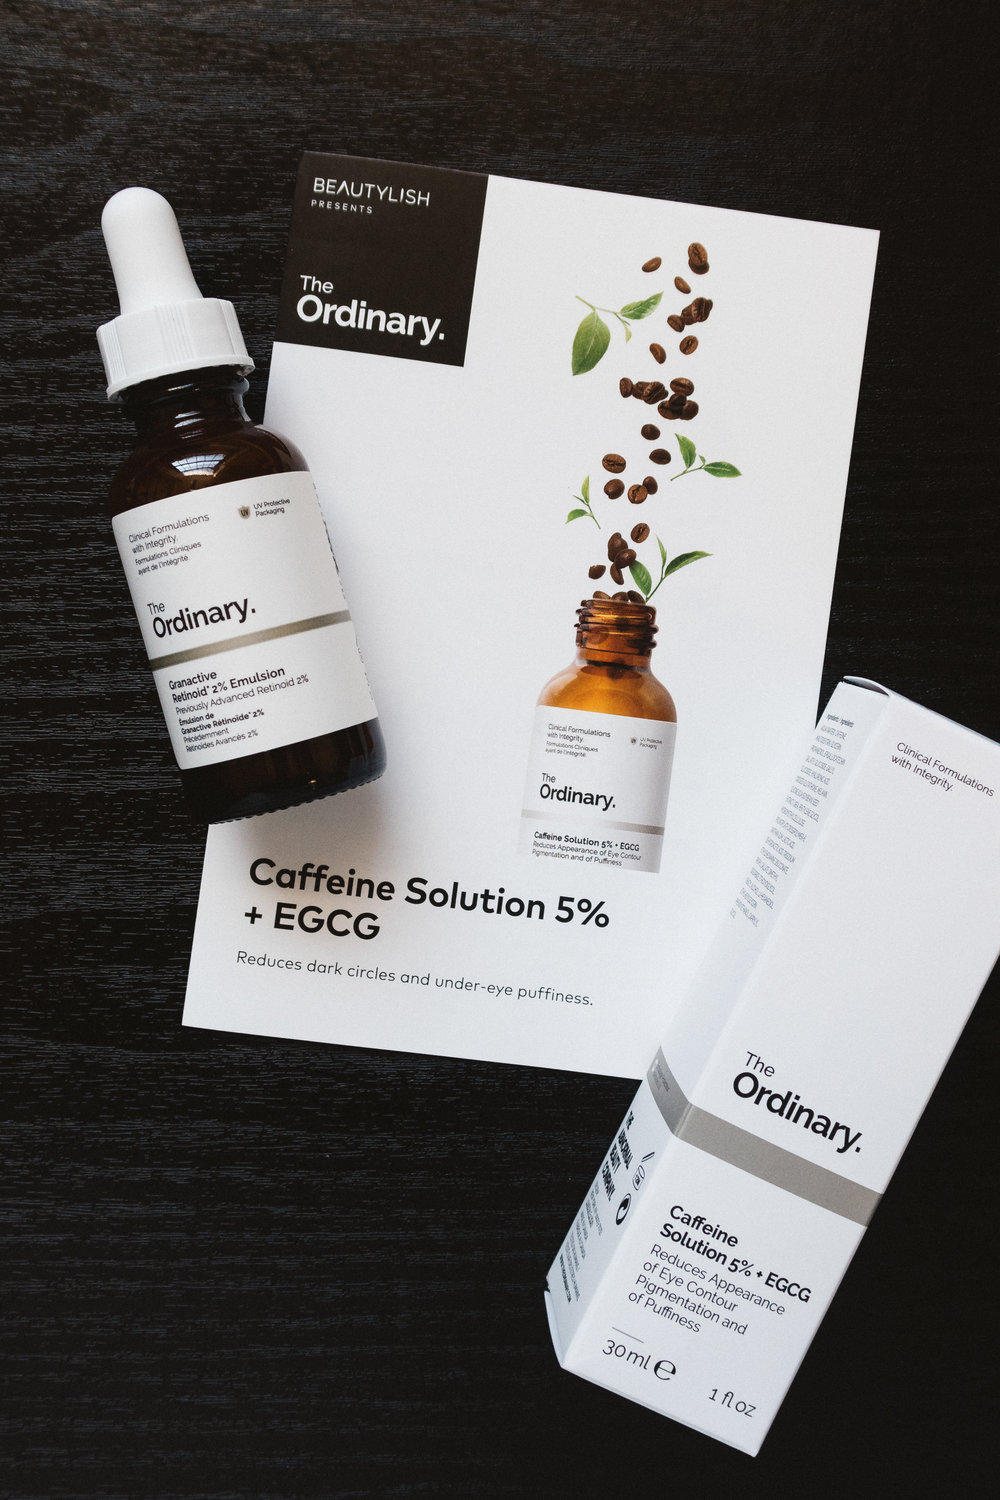 Beautylish sends a booklet with each product with information on how to use it, precautions, and how to build a regime with other The Ordinary prodcuts. -